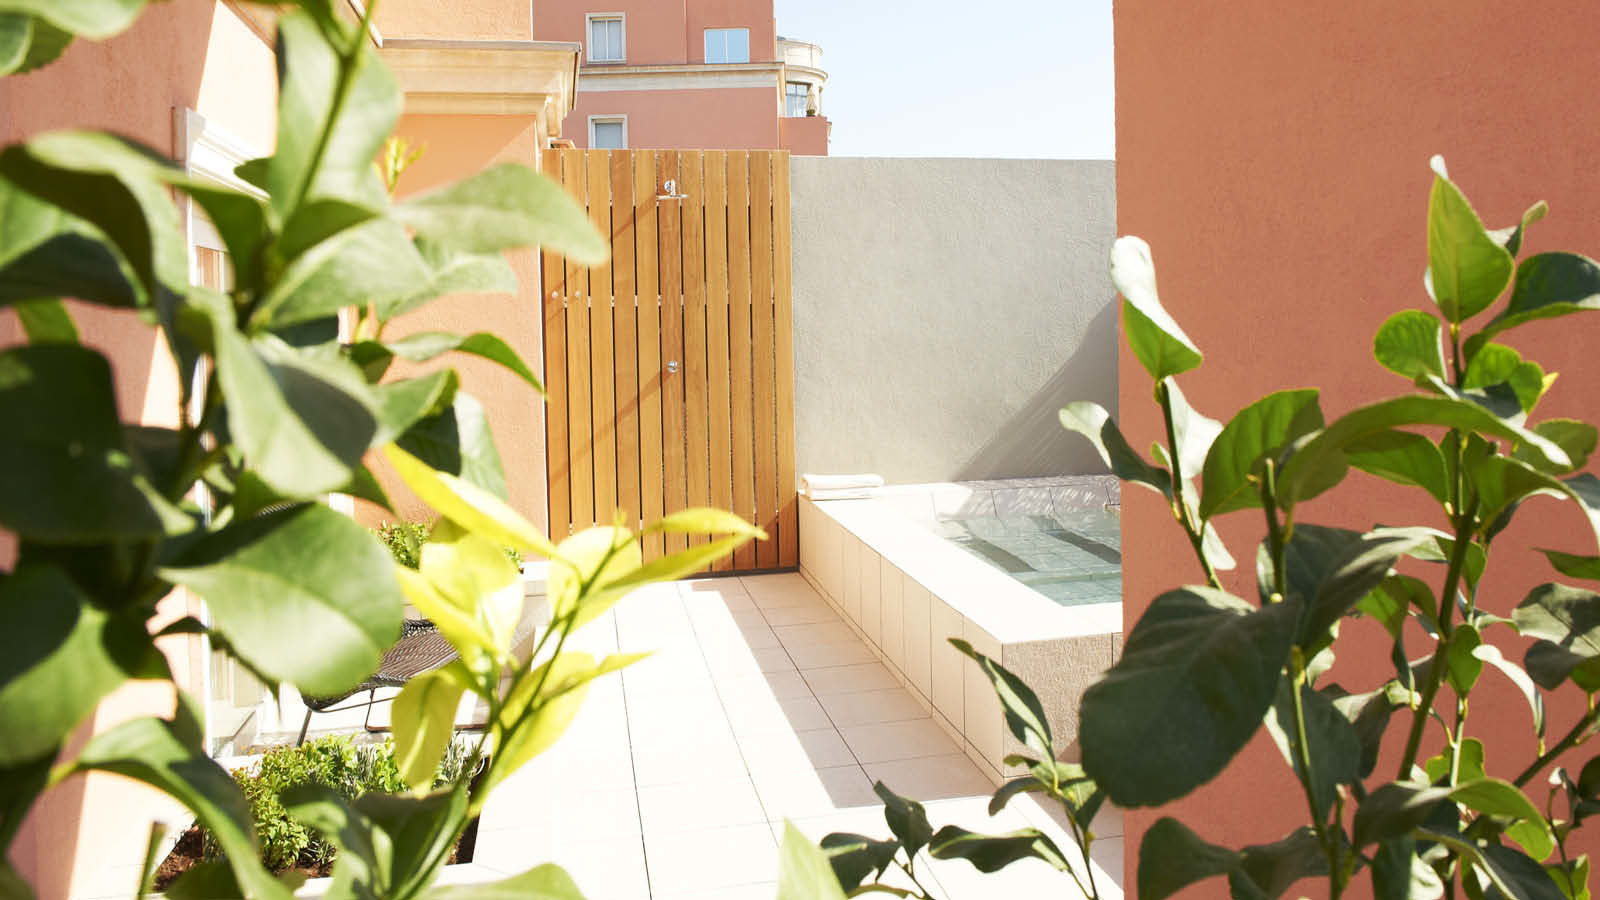 Explore Spa Studio terrace overlooking Barcelona | Le Méridien Barcelona